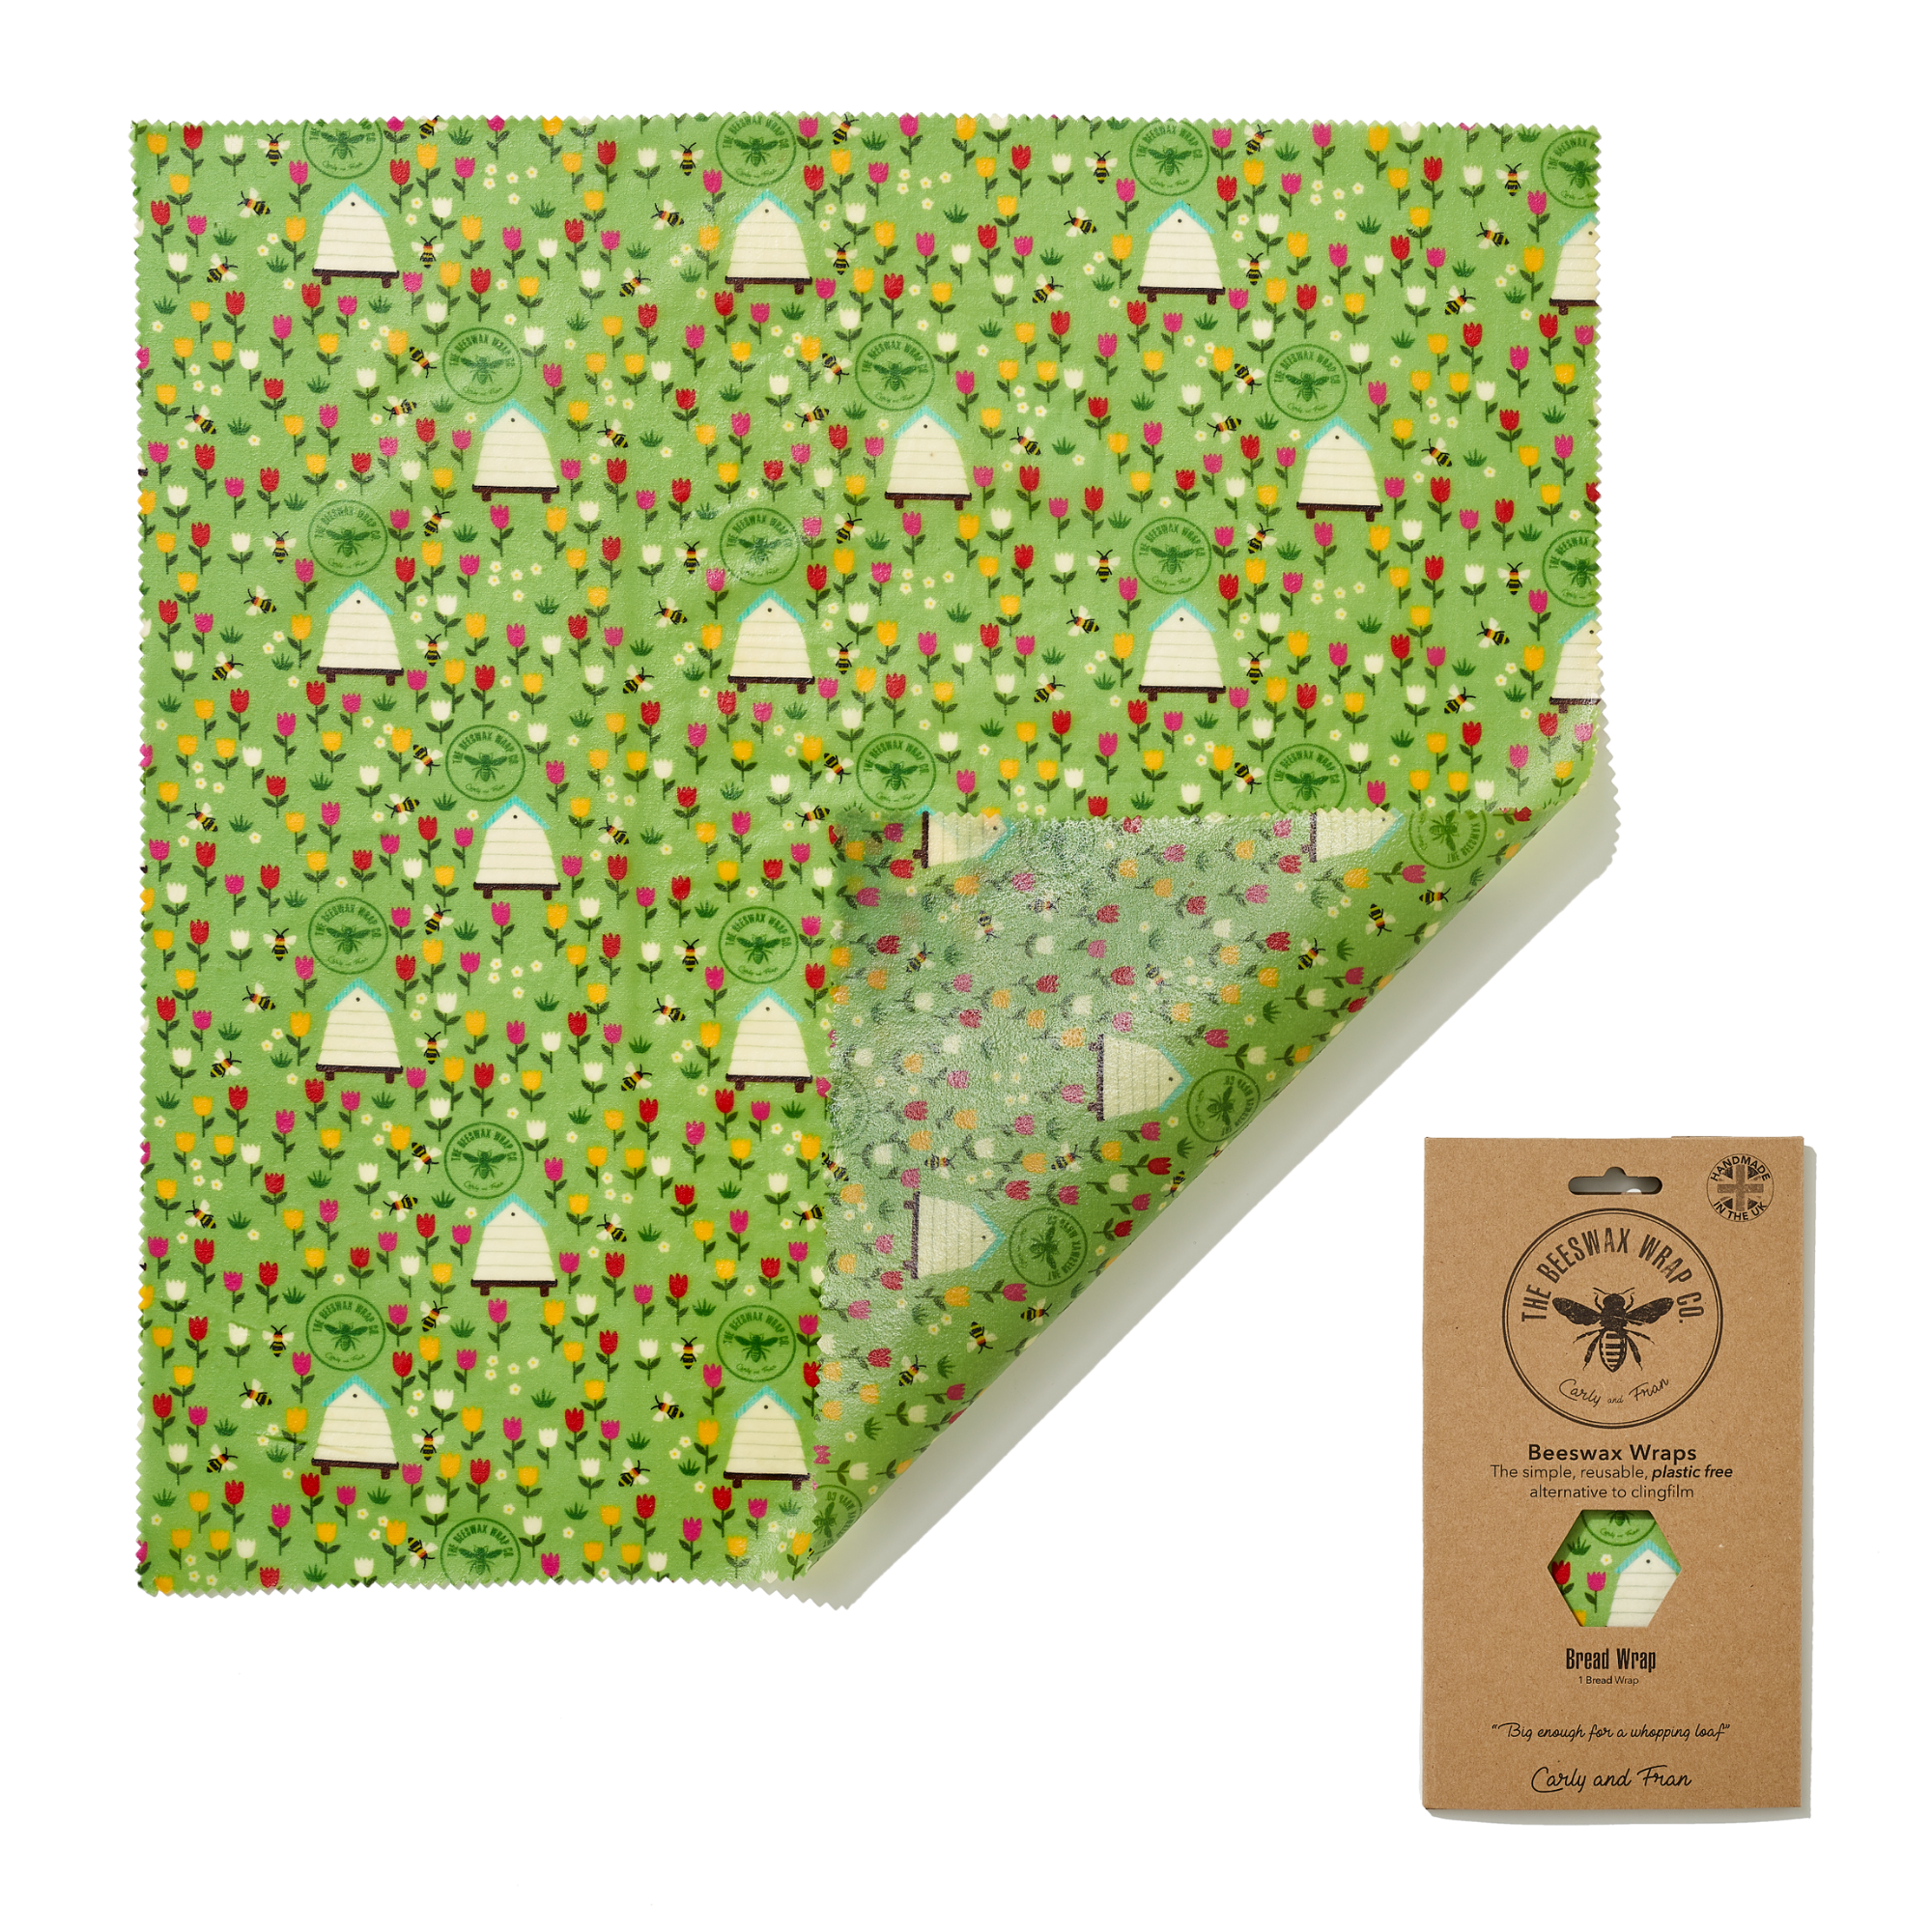 Beeswax Wrap Kit.png